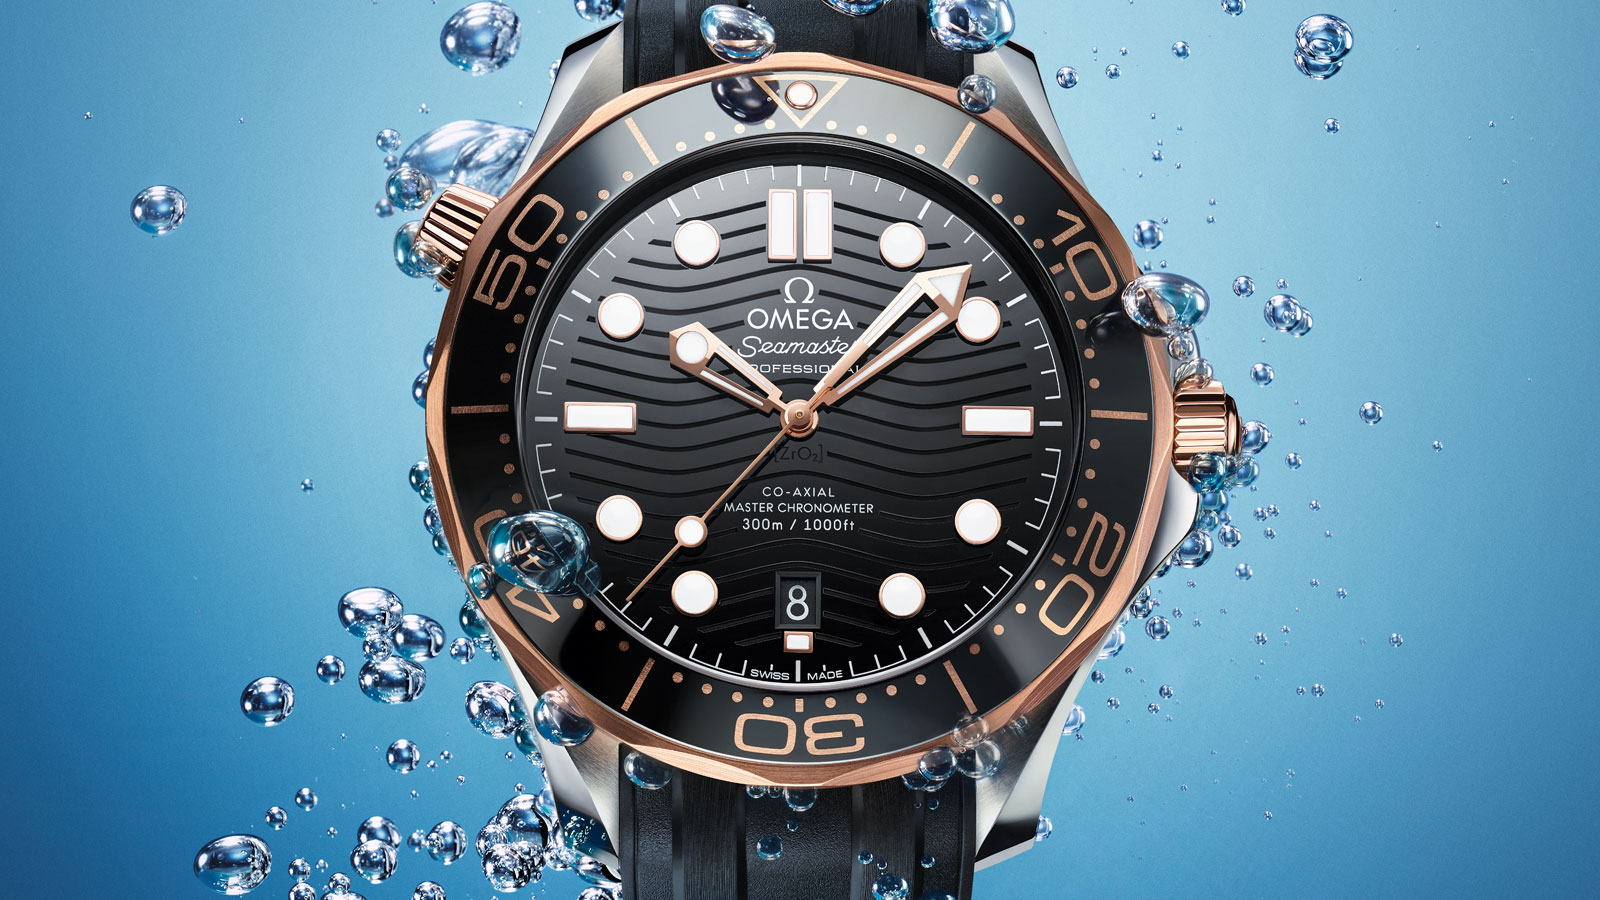 Seamaster Diver 300 M Diver 300M Omega Co‑Axial Master Chronometer 42 mm Watch - 210.22.42.20.01.002